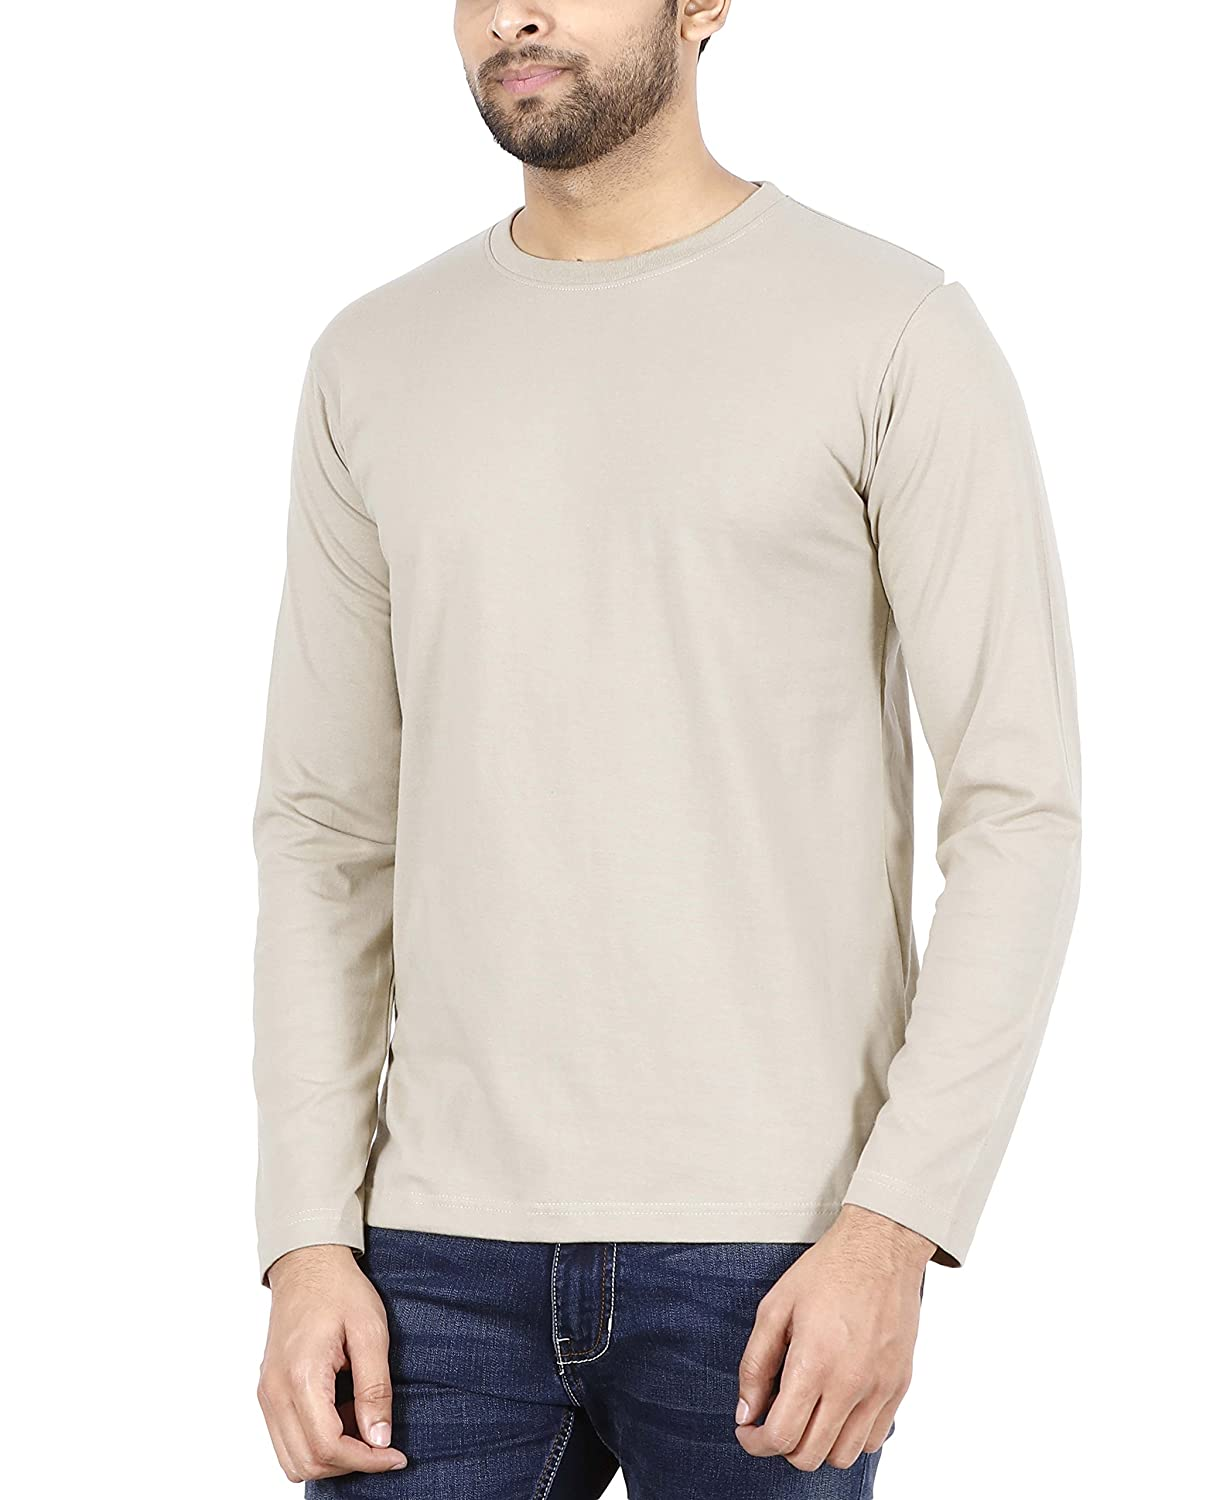 9383ac7dc FLEXIMAA Men's Cotton Plain Round Neck Full Sleeve T-Shirt Biscuit Color.:  Amazon.in: Clothing & Accessories